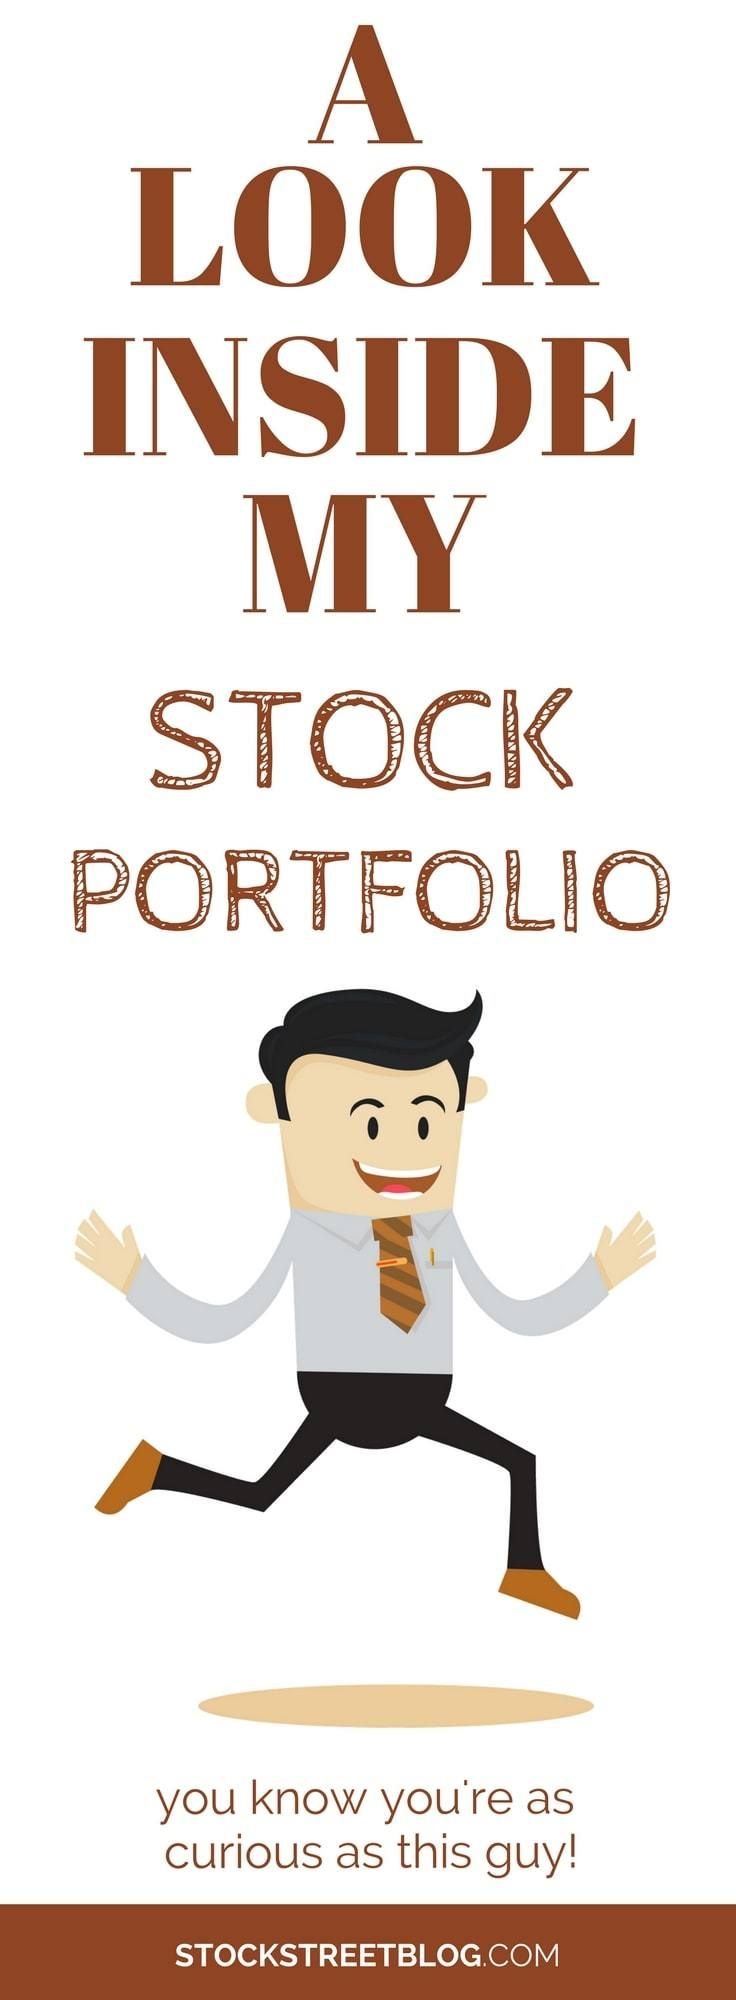 If you are curious about how I invest my #money, you can take a peek at my investment portfolio! I offer monthly updates on what #stocks and funds I am invested in. The first step to learning about #investing and/or the stock market is to start reading about what others do. This can be a great introduction to start your journey to #financialfreedom and #retirement!